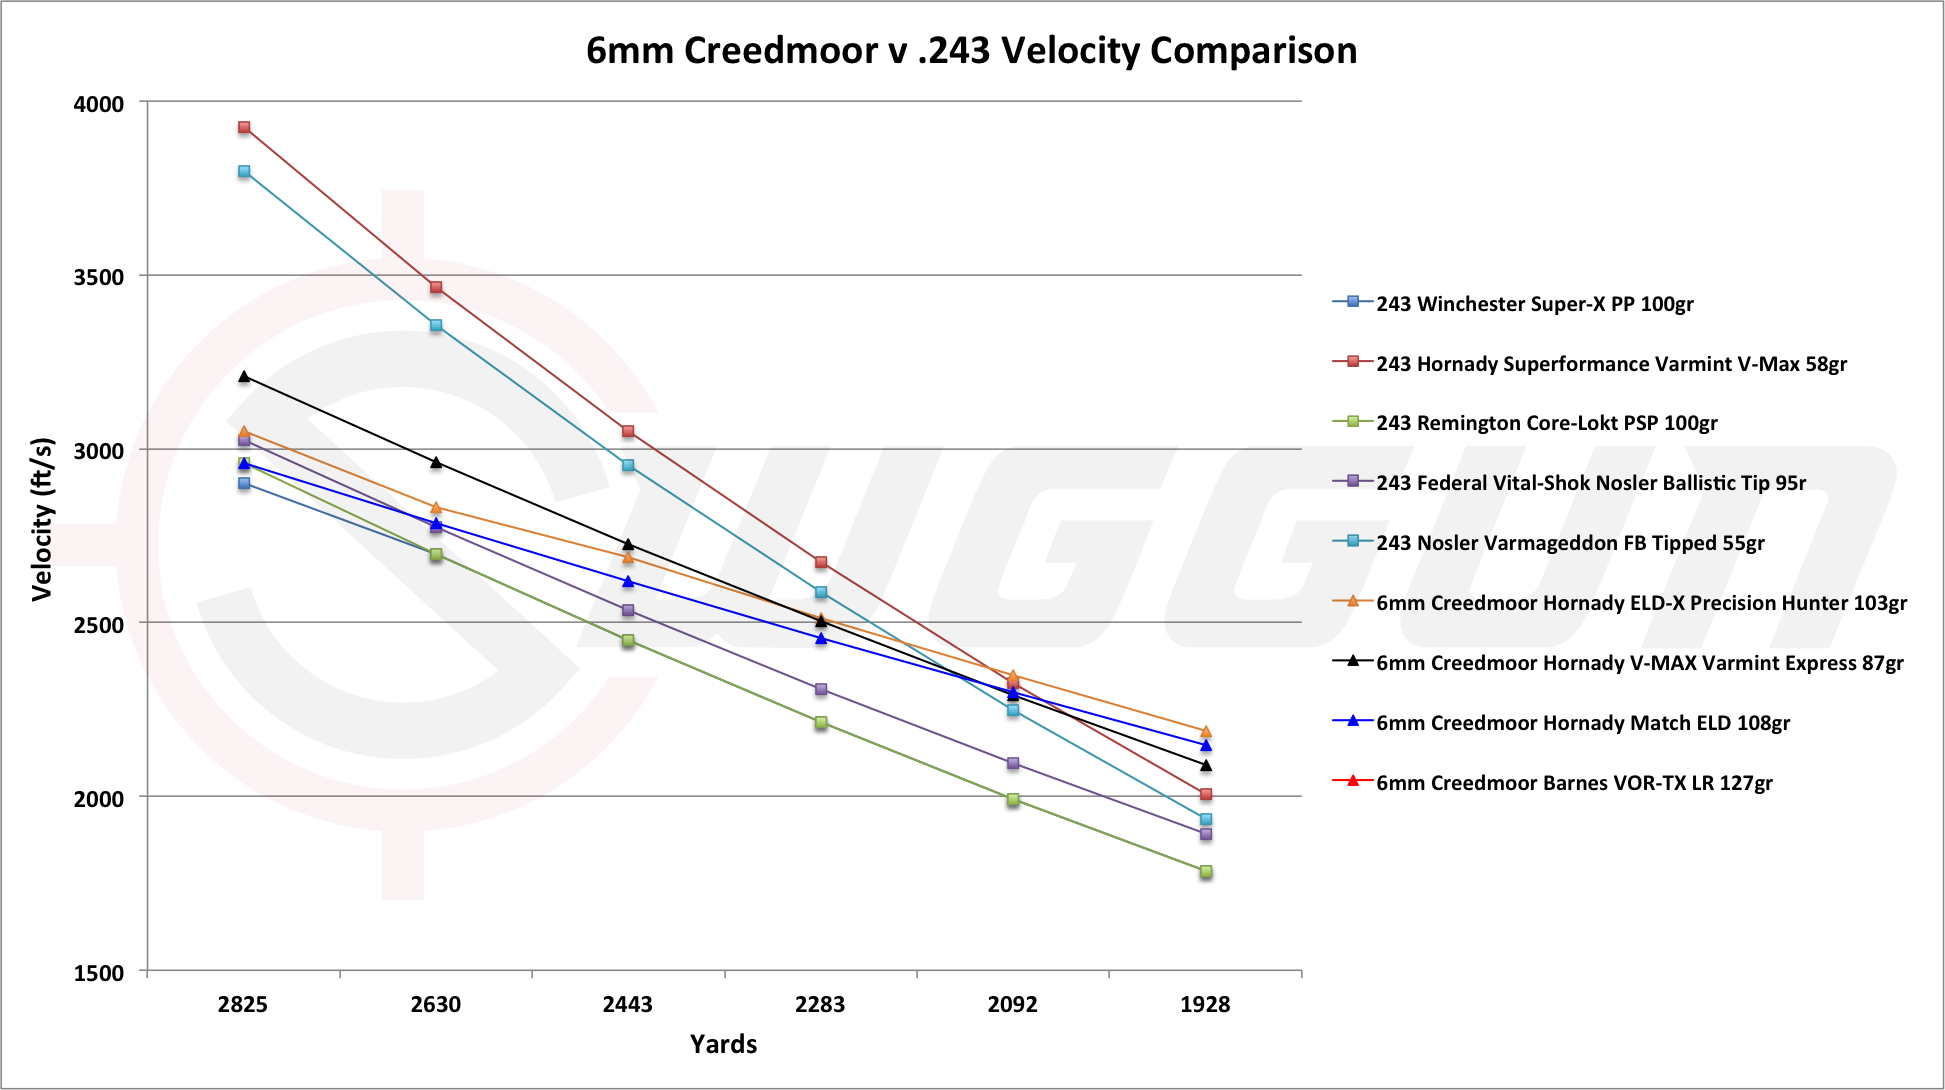 Velocity Comparison Of The 243 Vs 6mm Creedmoor